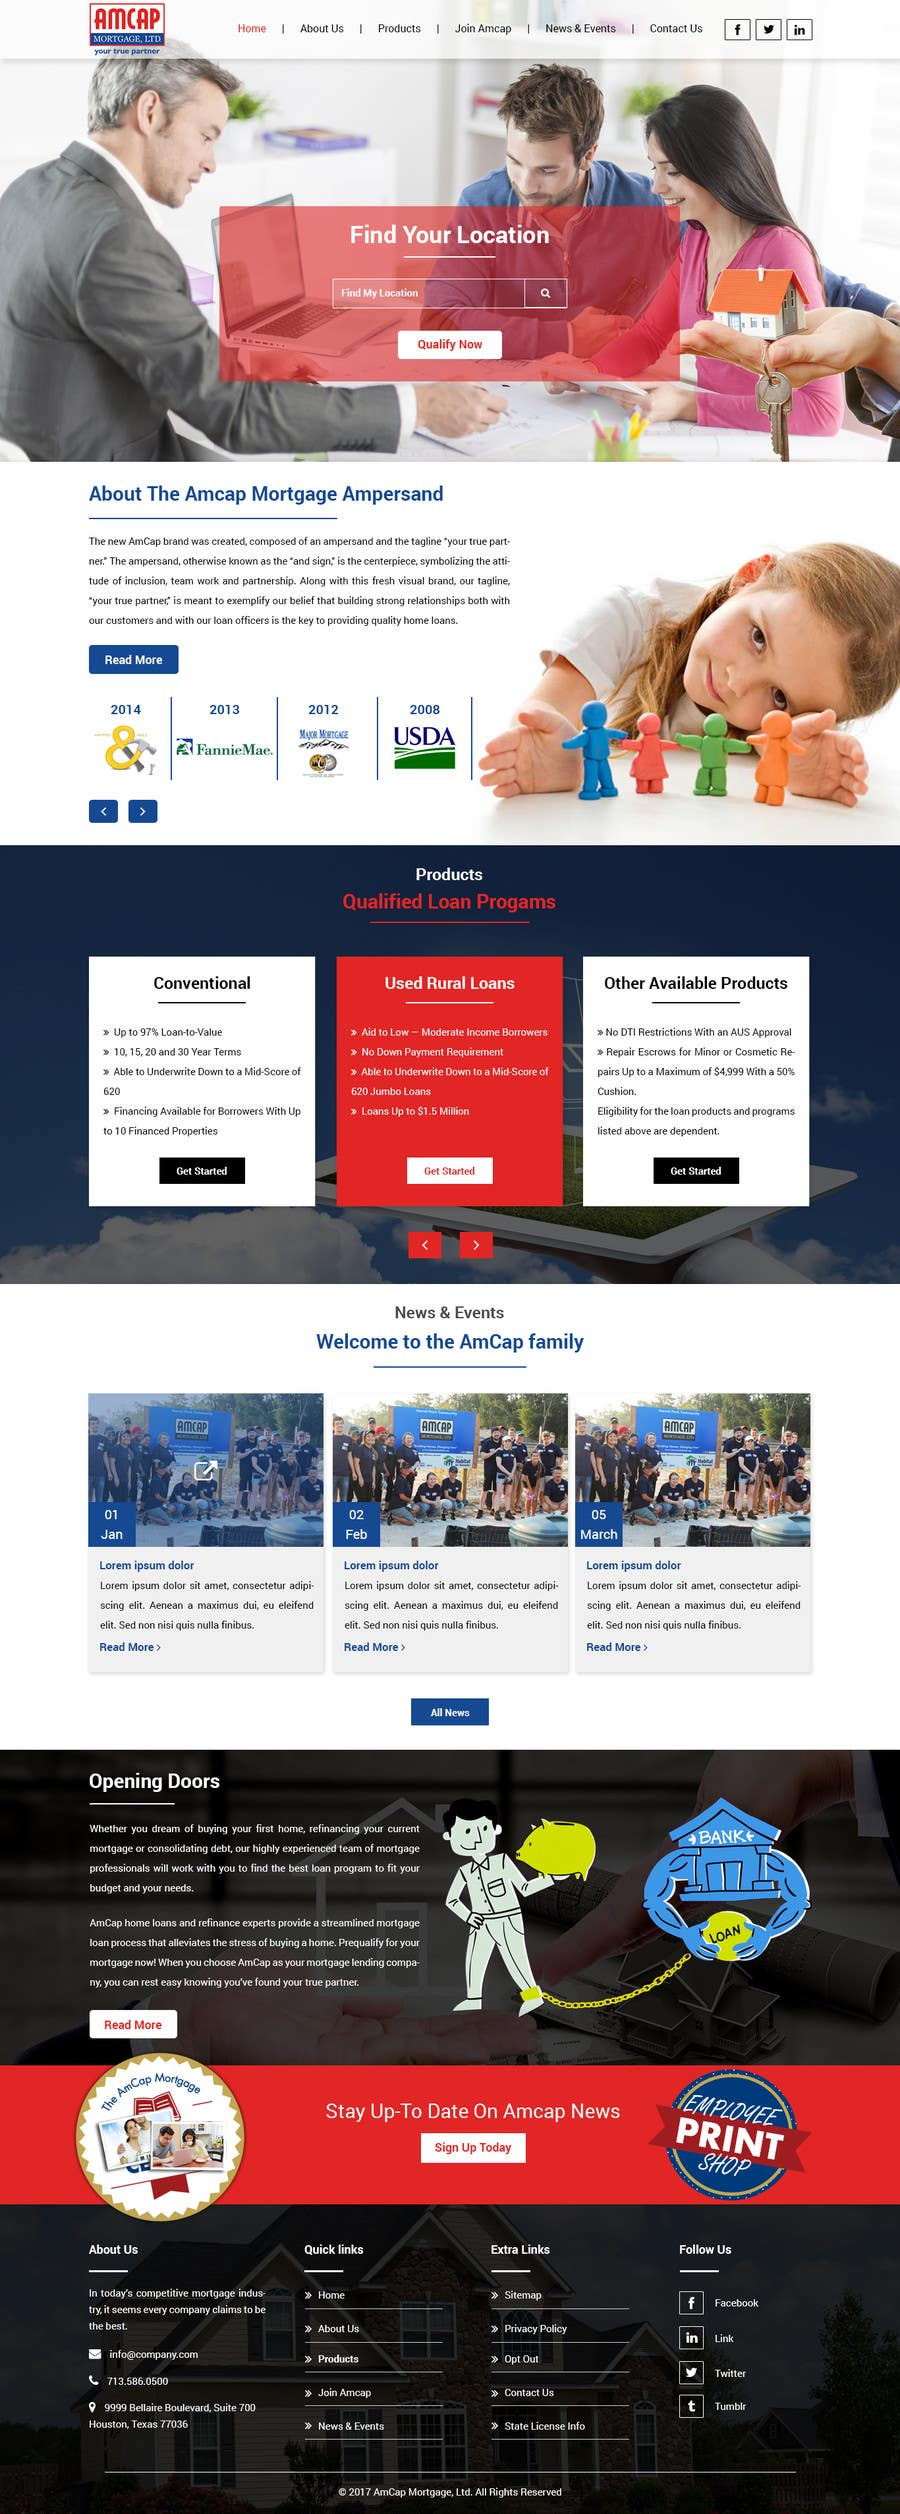 Proposition n°5 du concours Design a Website Mockup - HOMEPAGE ONLY - for a Mortgage Company